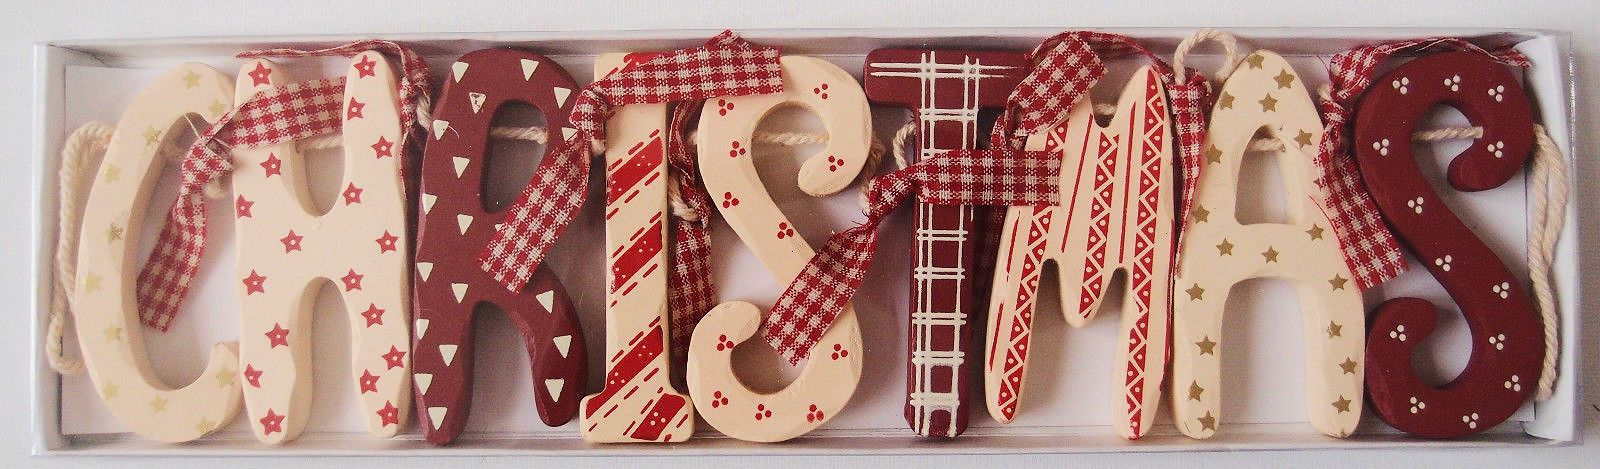 Astonishing 9 46 Chic Shabby Christmas Wooden Garland Red Cream Download Free Architecture Designs Rallybritishbridgeorg